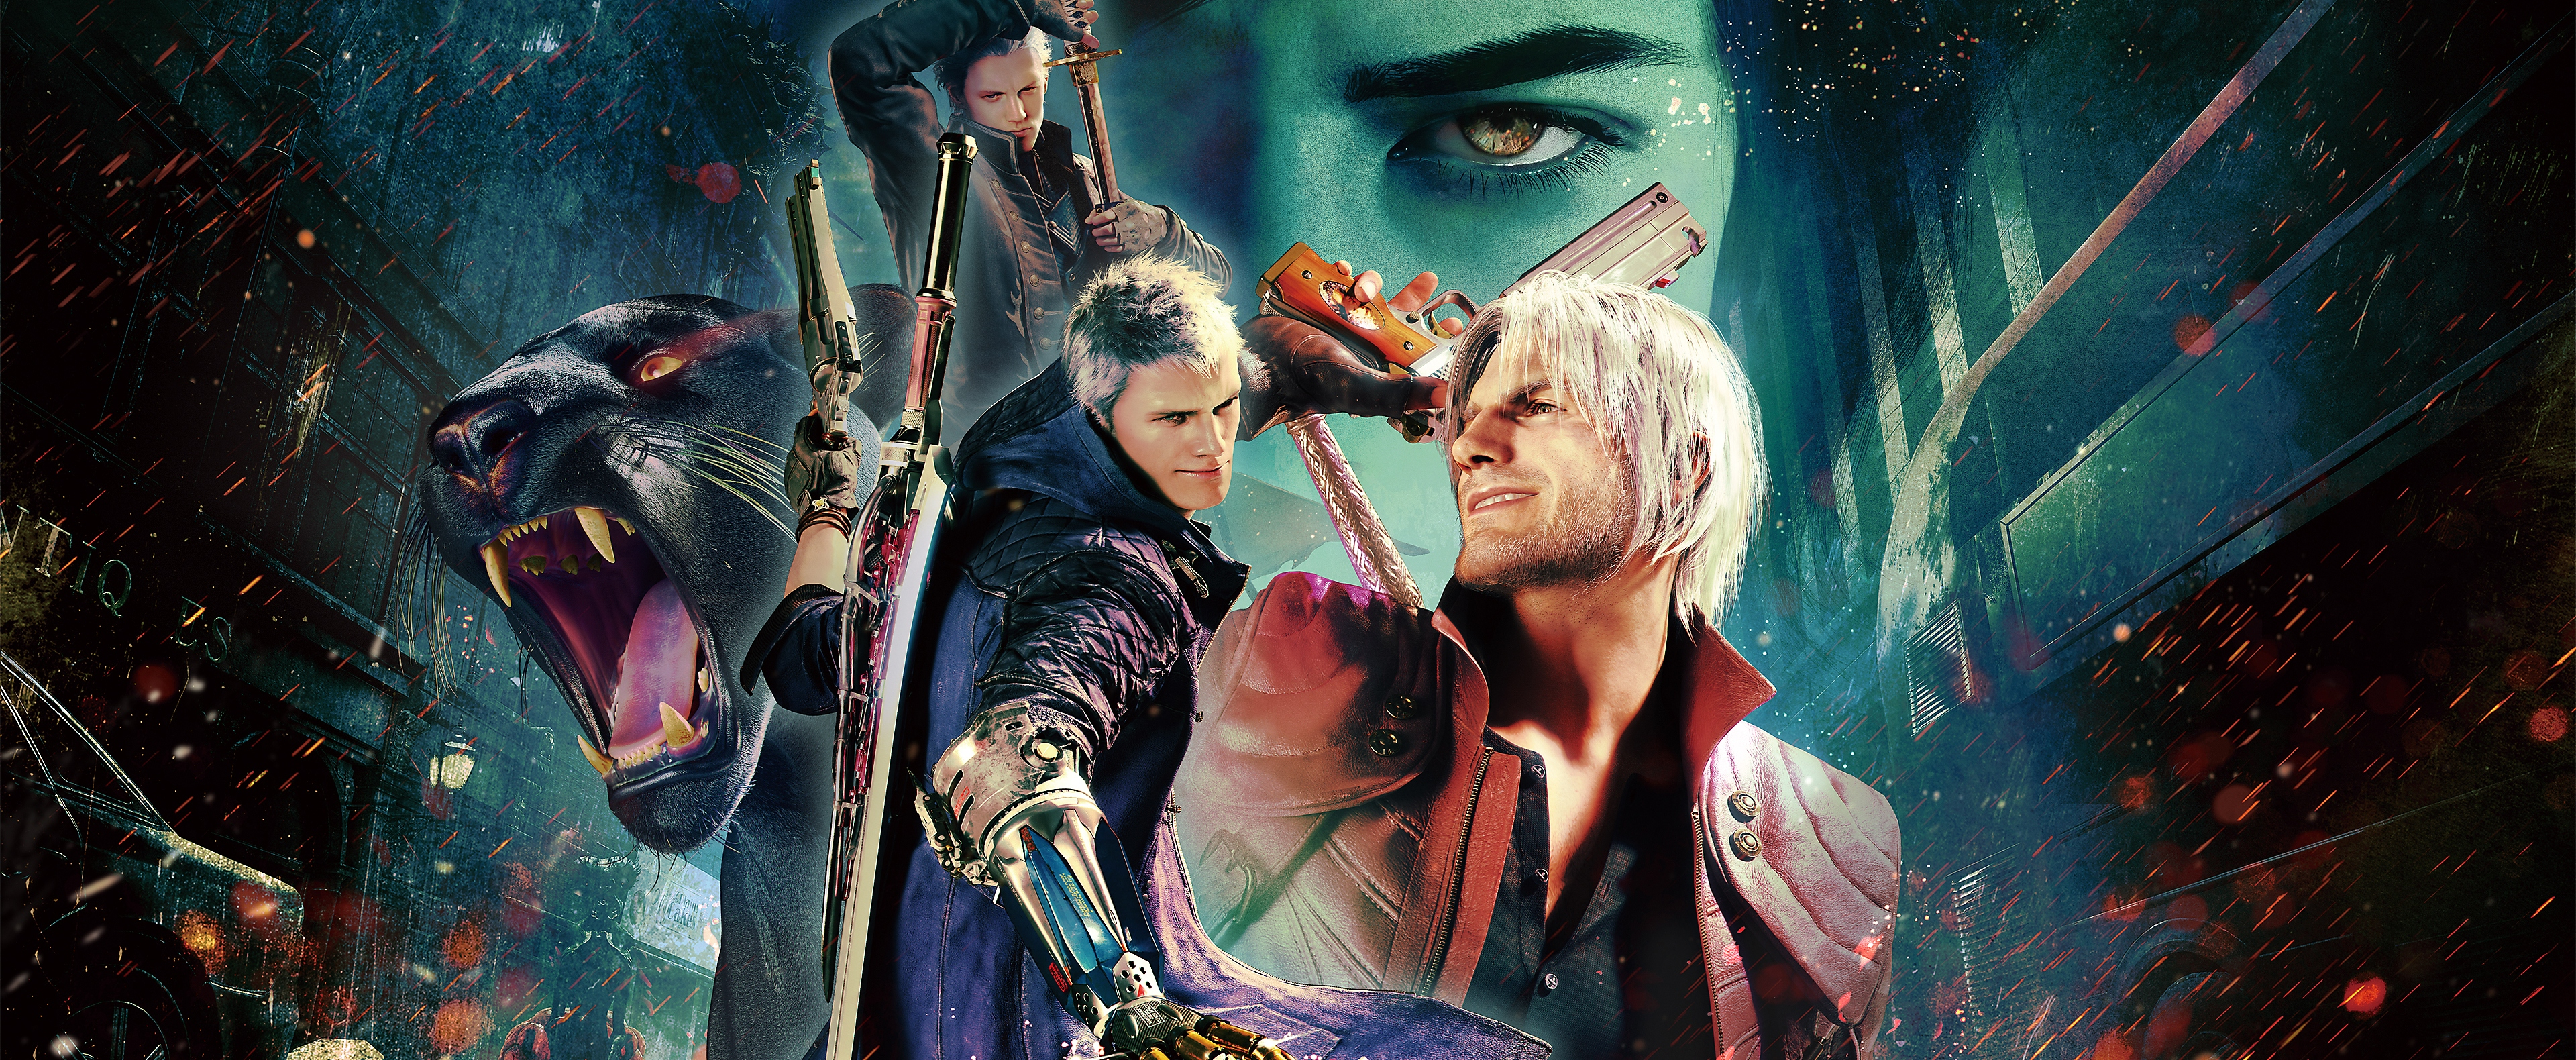 Devil May Cry 5: Special Edition - F11/kryss-tast Art